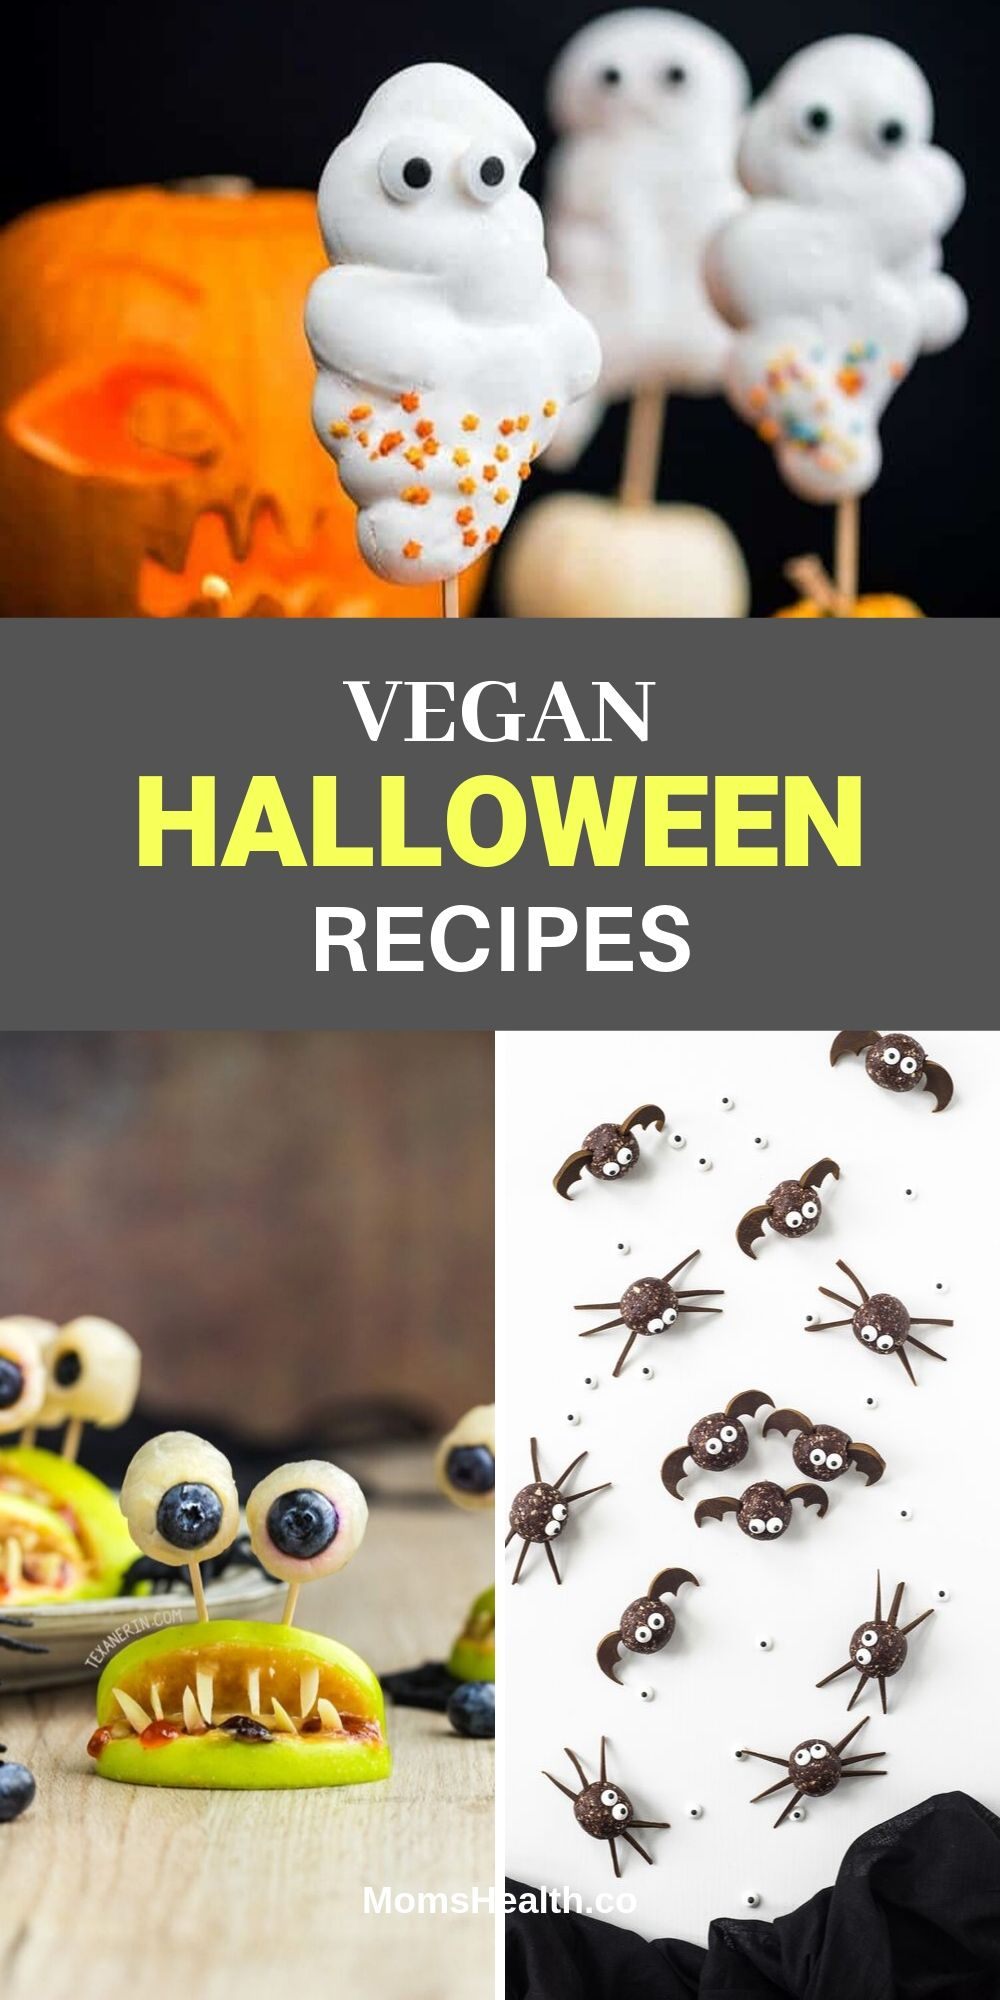 Vegan Halloween Recipes - Spooky Vegan Halloween Treats